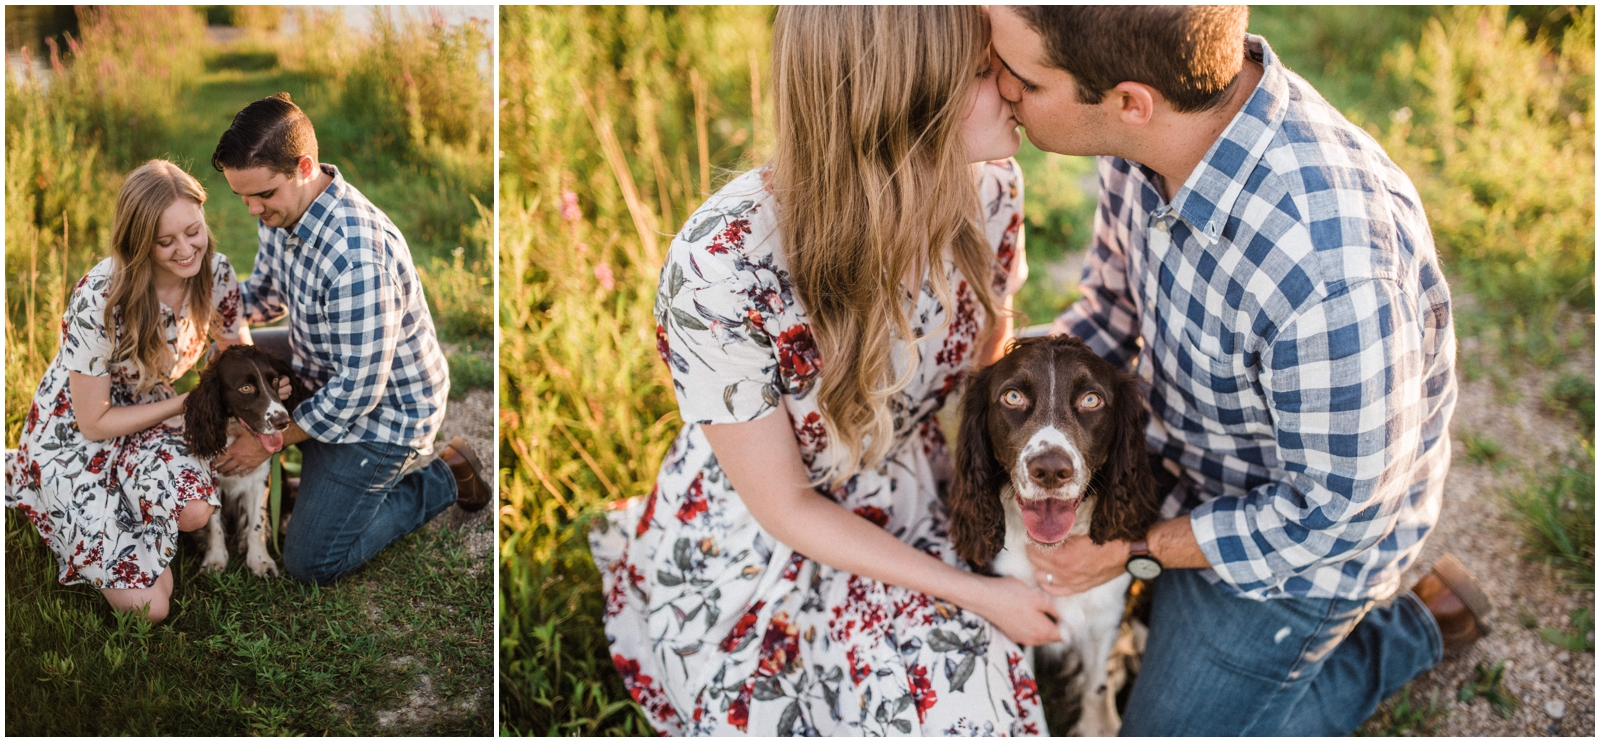 Eastwood MetroPark Anniversary Session | Dayton Portrait Photographer